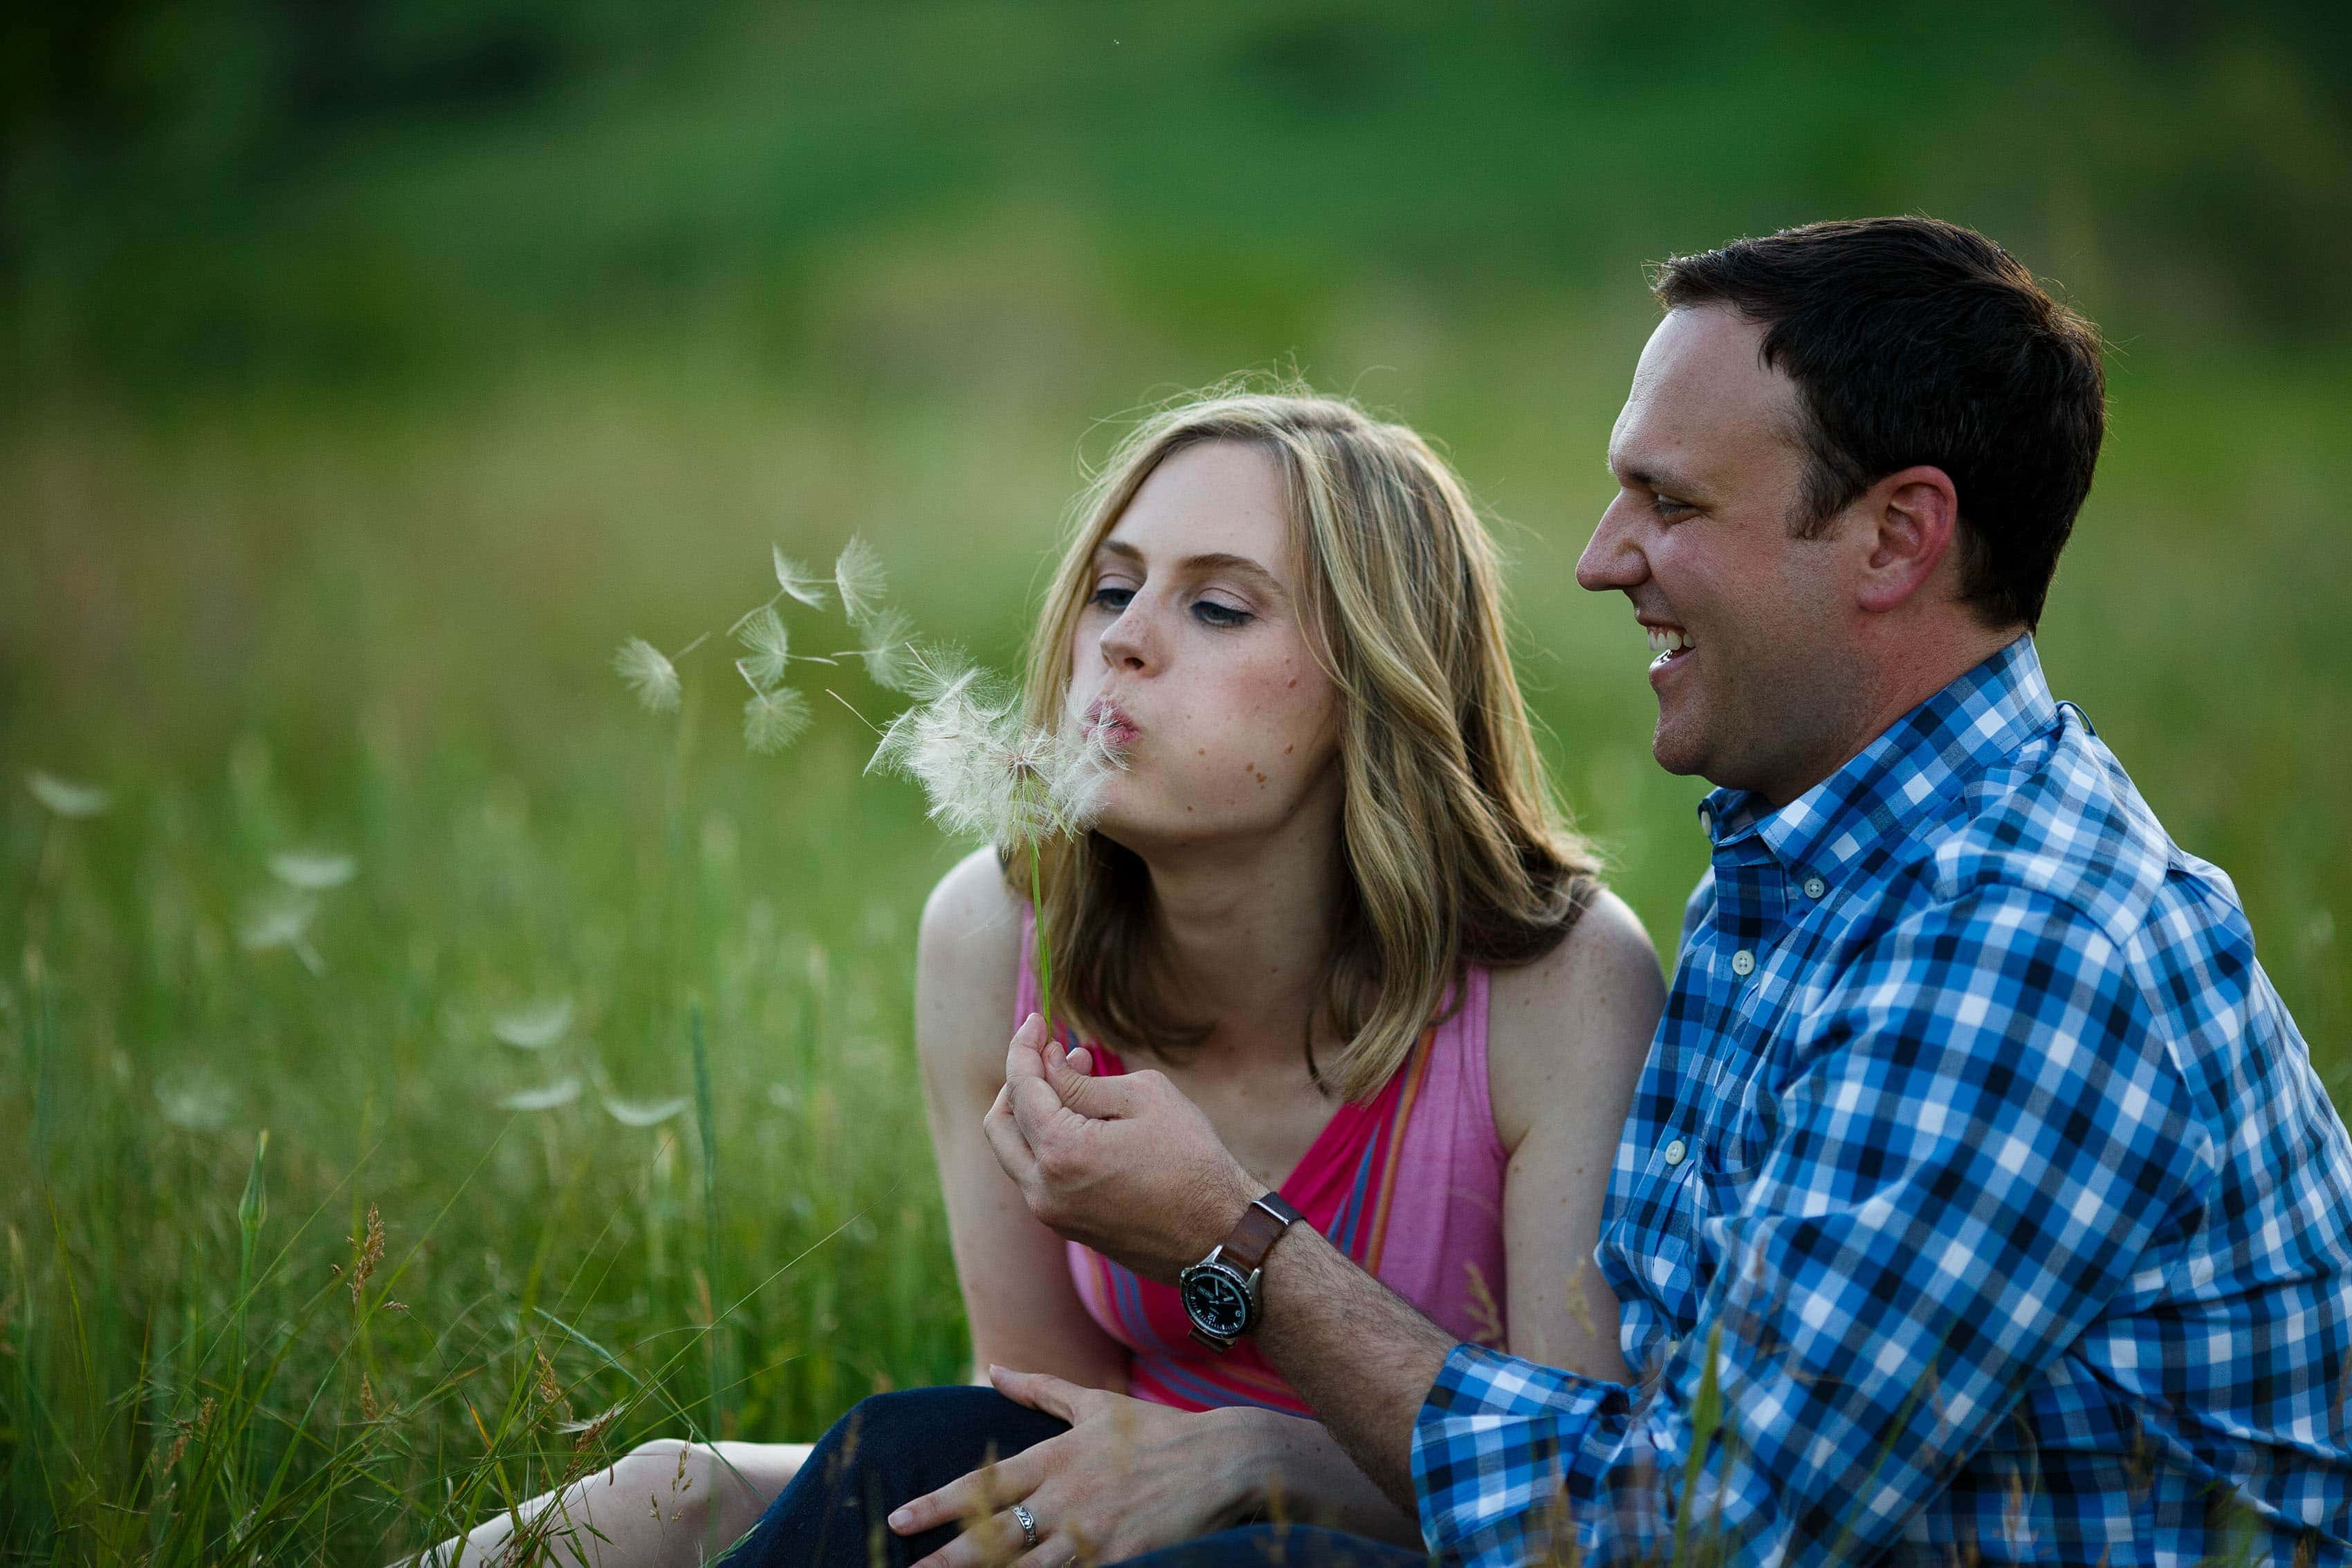 Kristy blows the seeds off of a dandelion during their engagement session